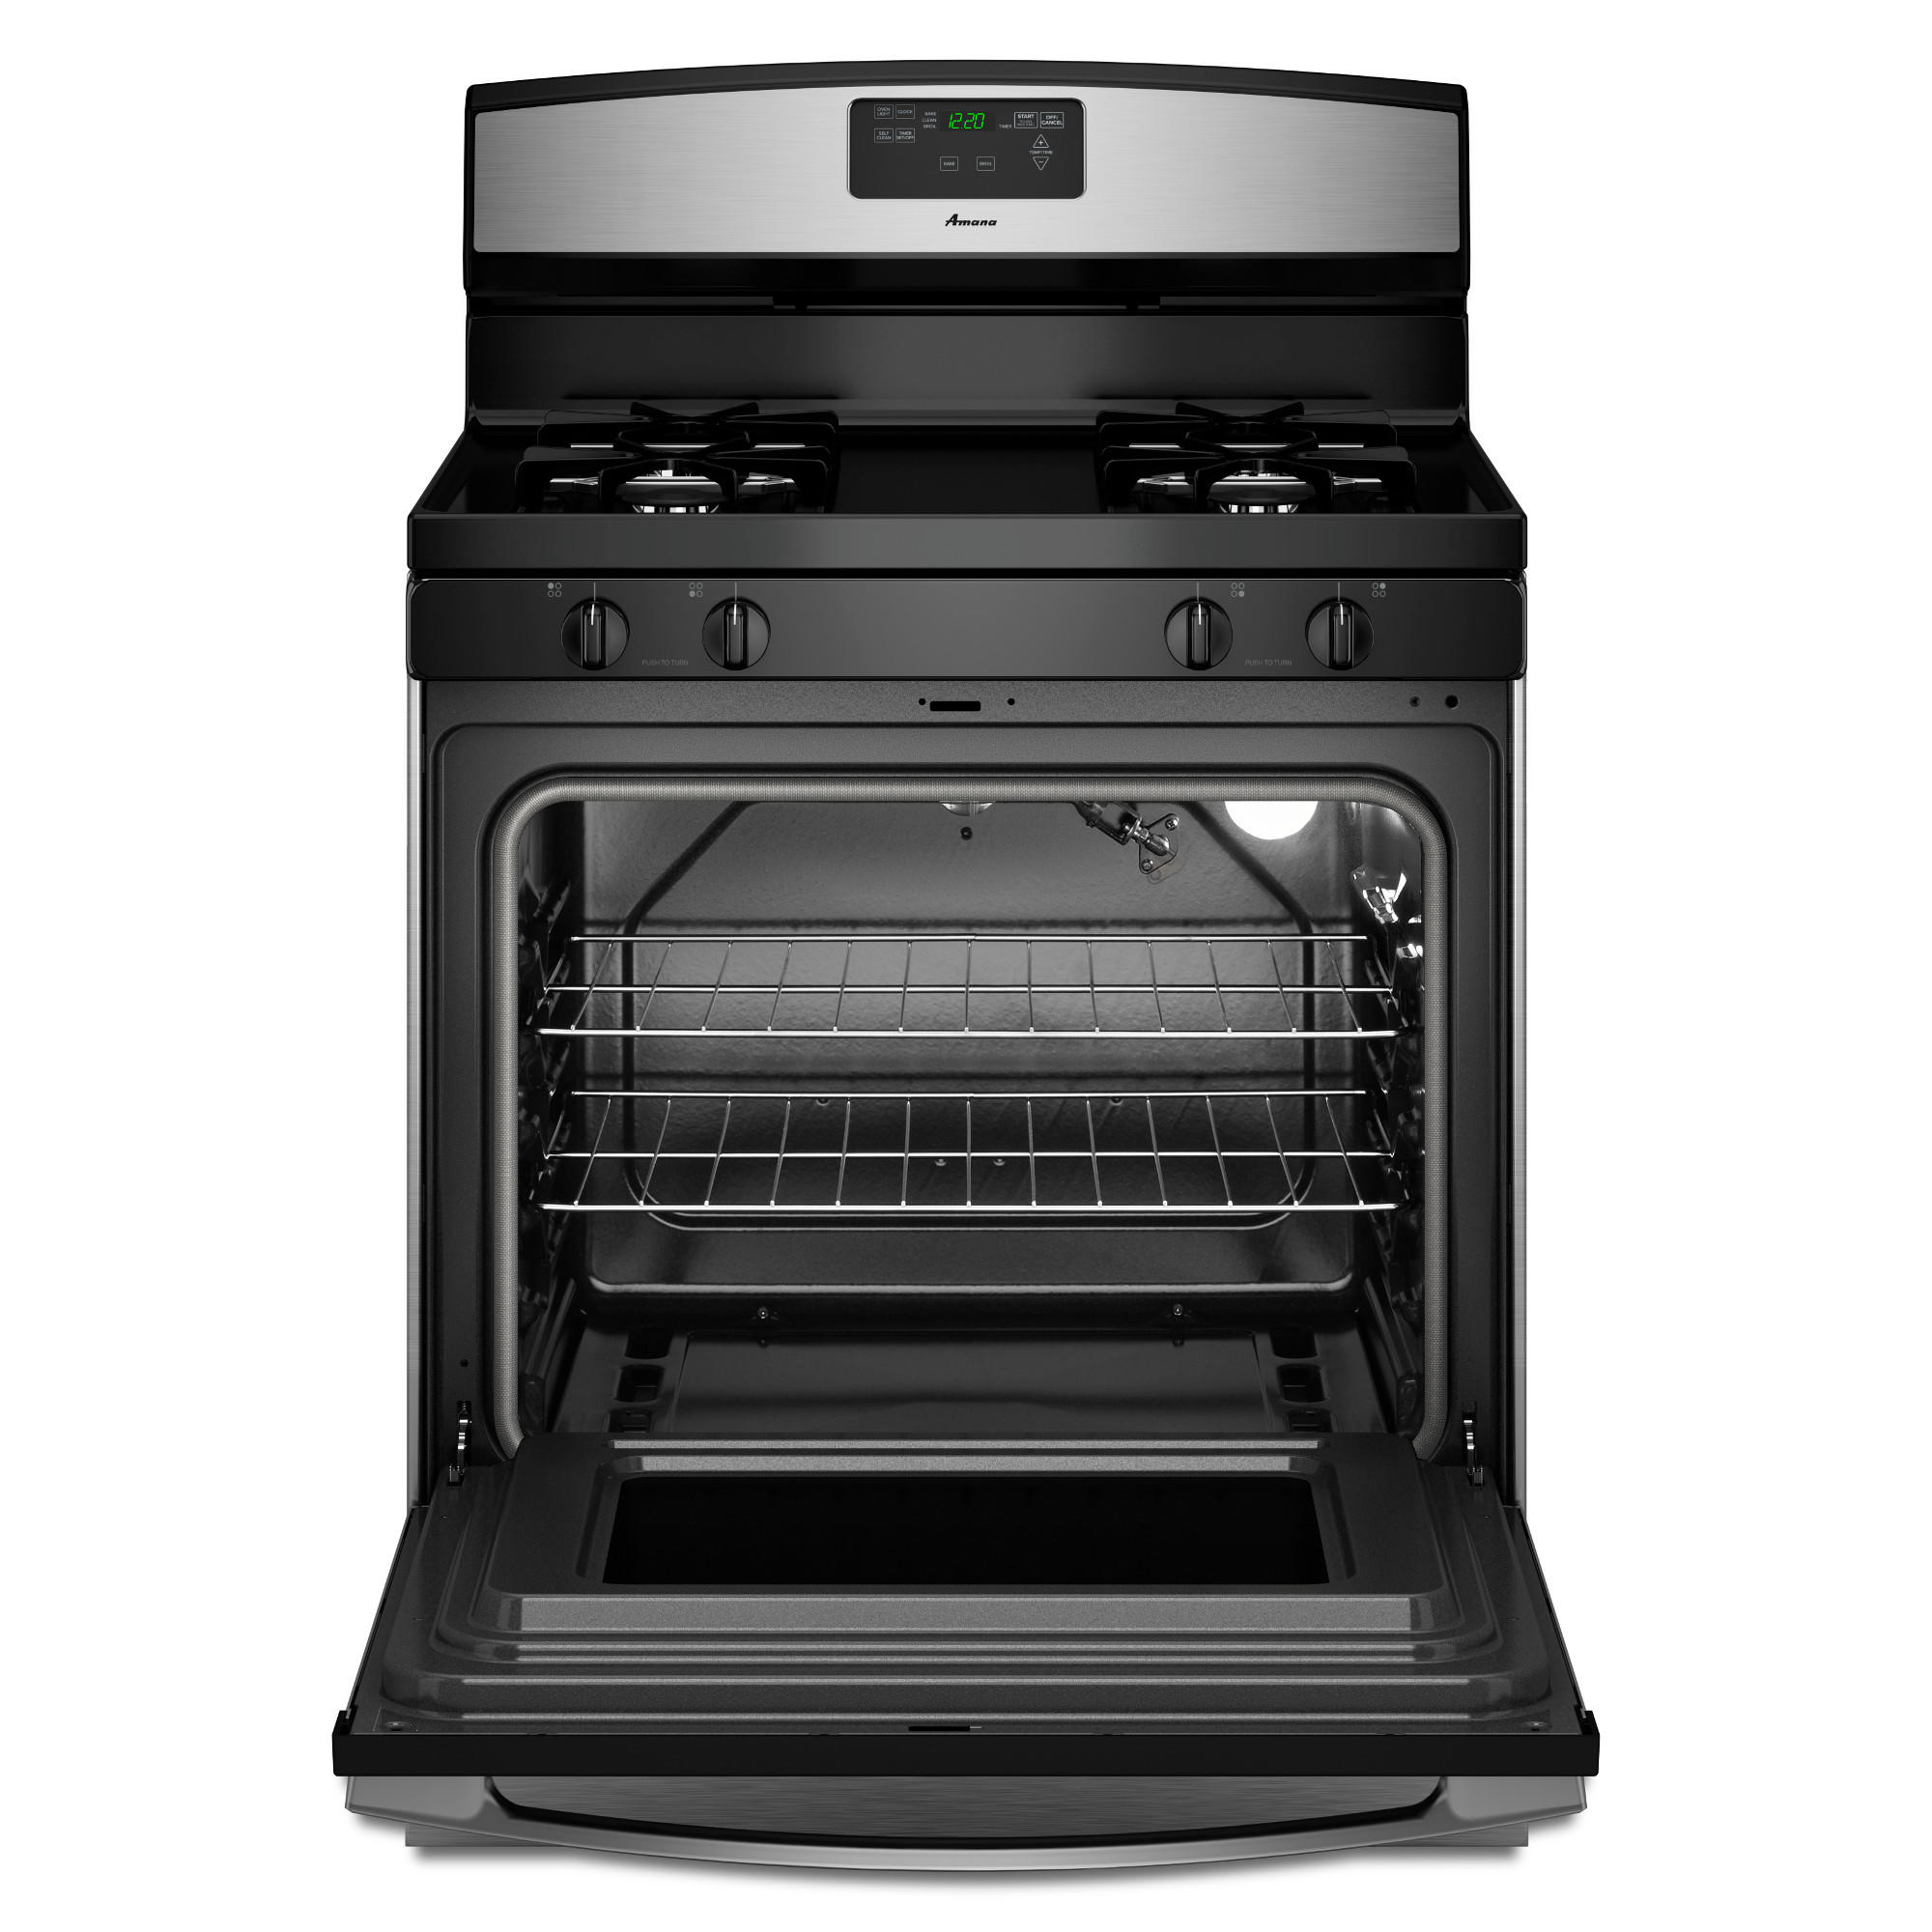 Amana AGR5630BDS 5.0 cu. ft. Gas Range - Stainless Steel